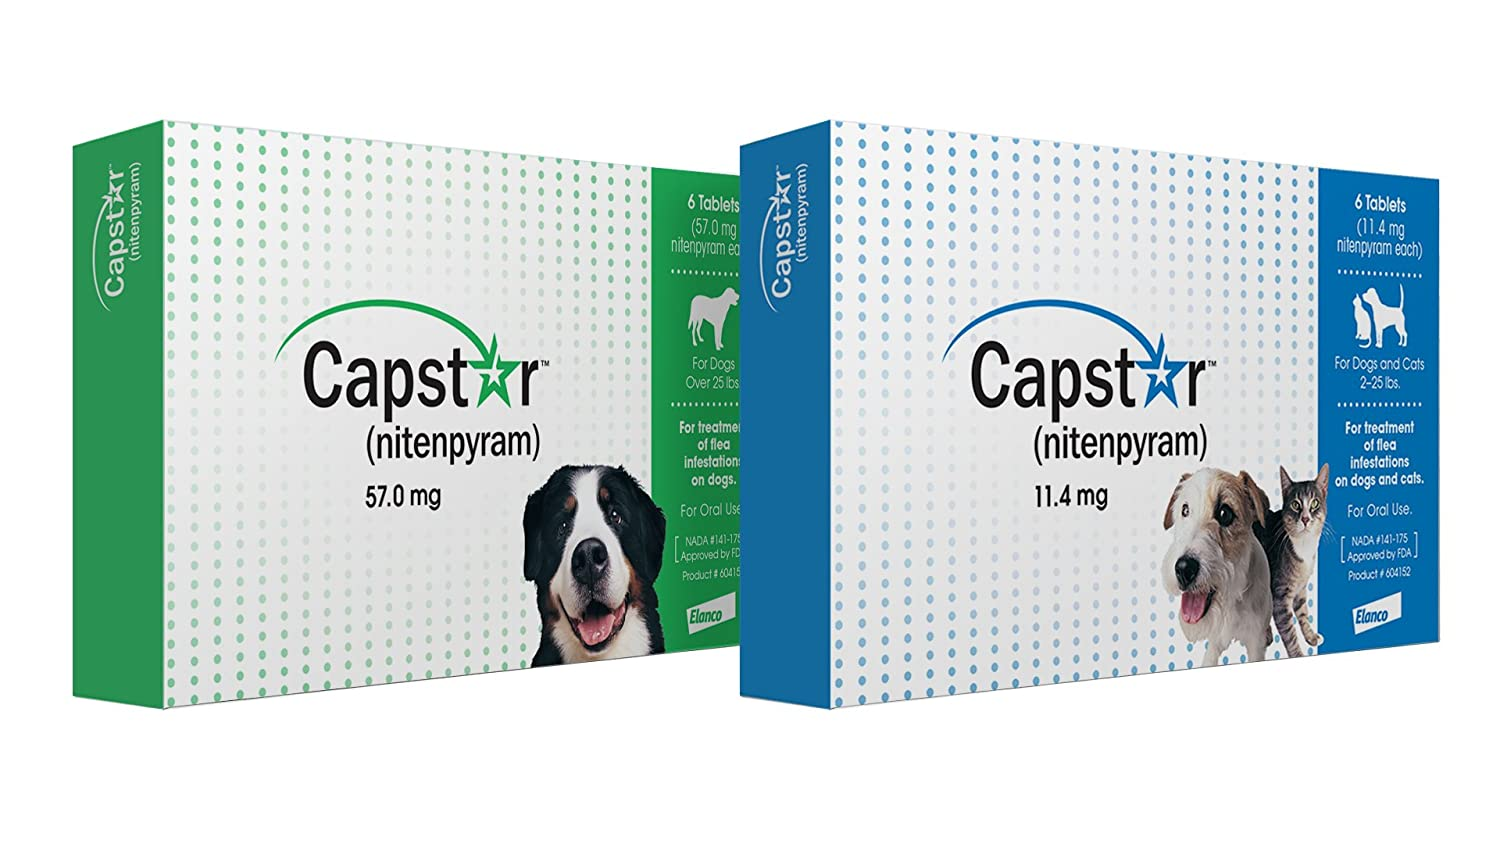 Amazoncom Capstar Flea Tablets For Dogs And Cats 6 Count 2 25